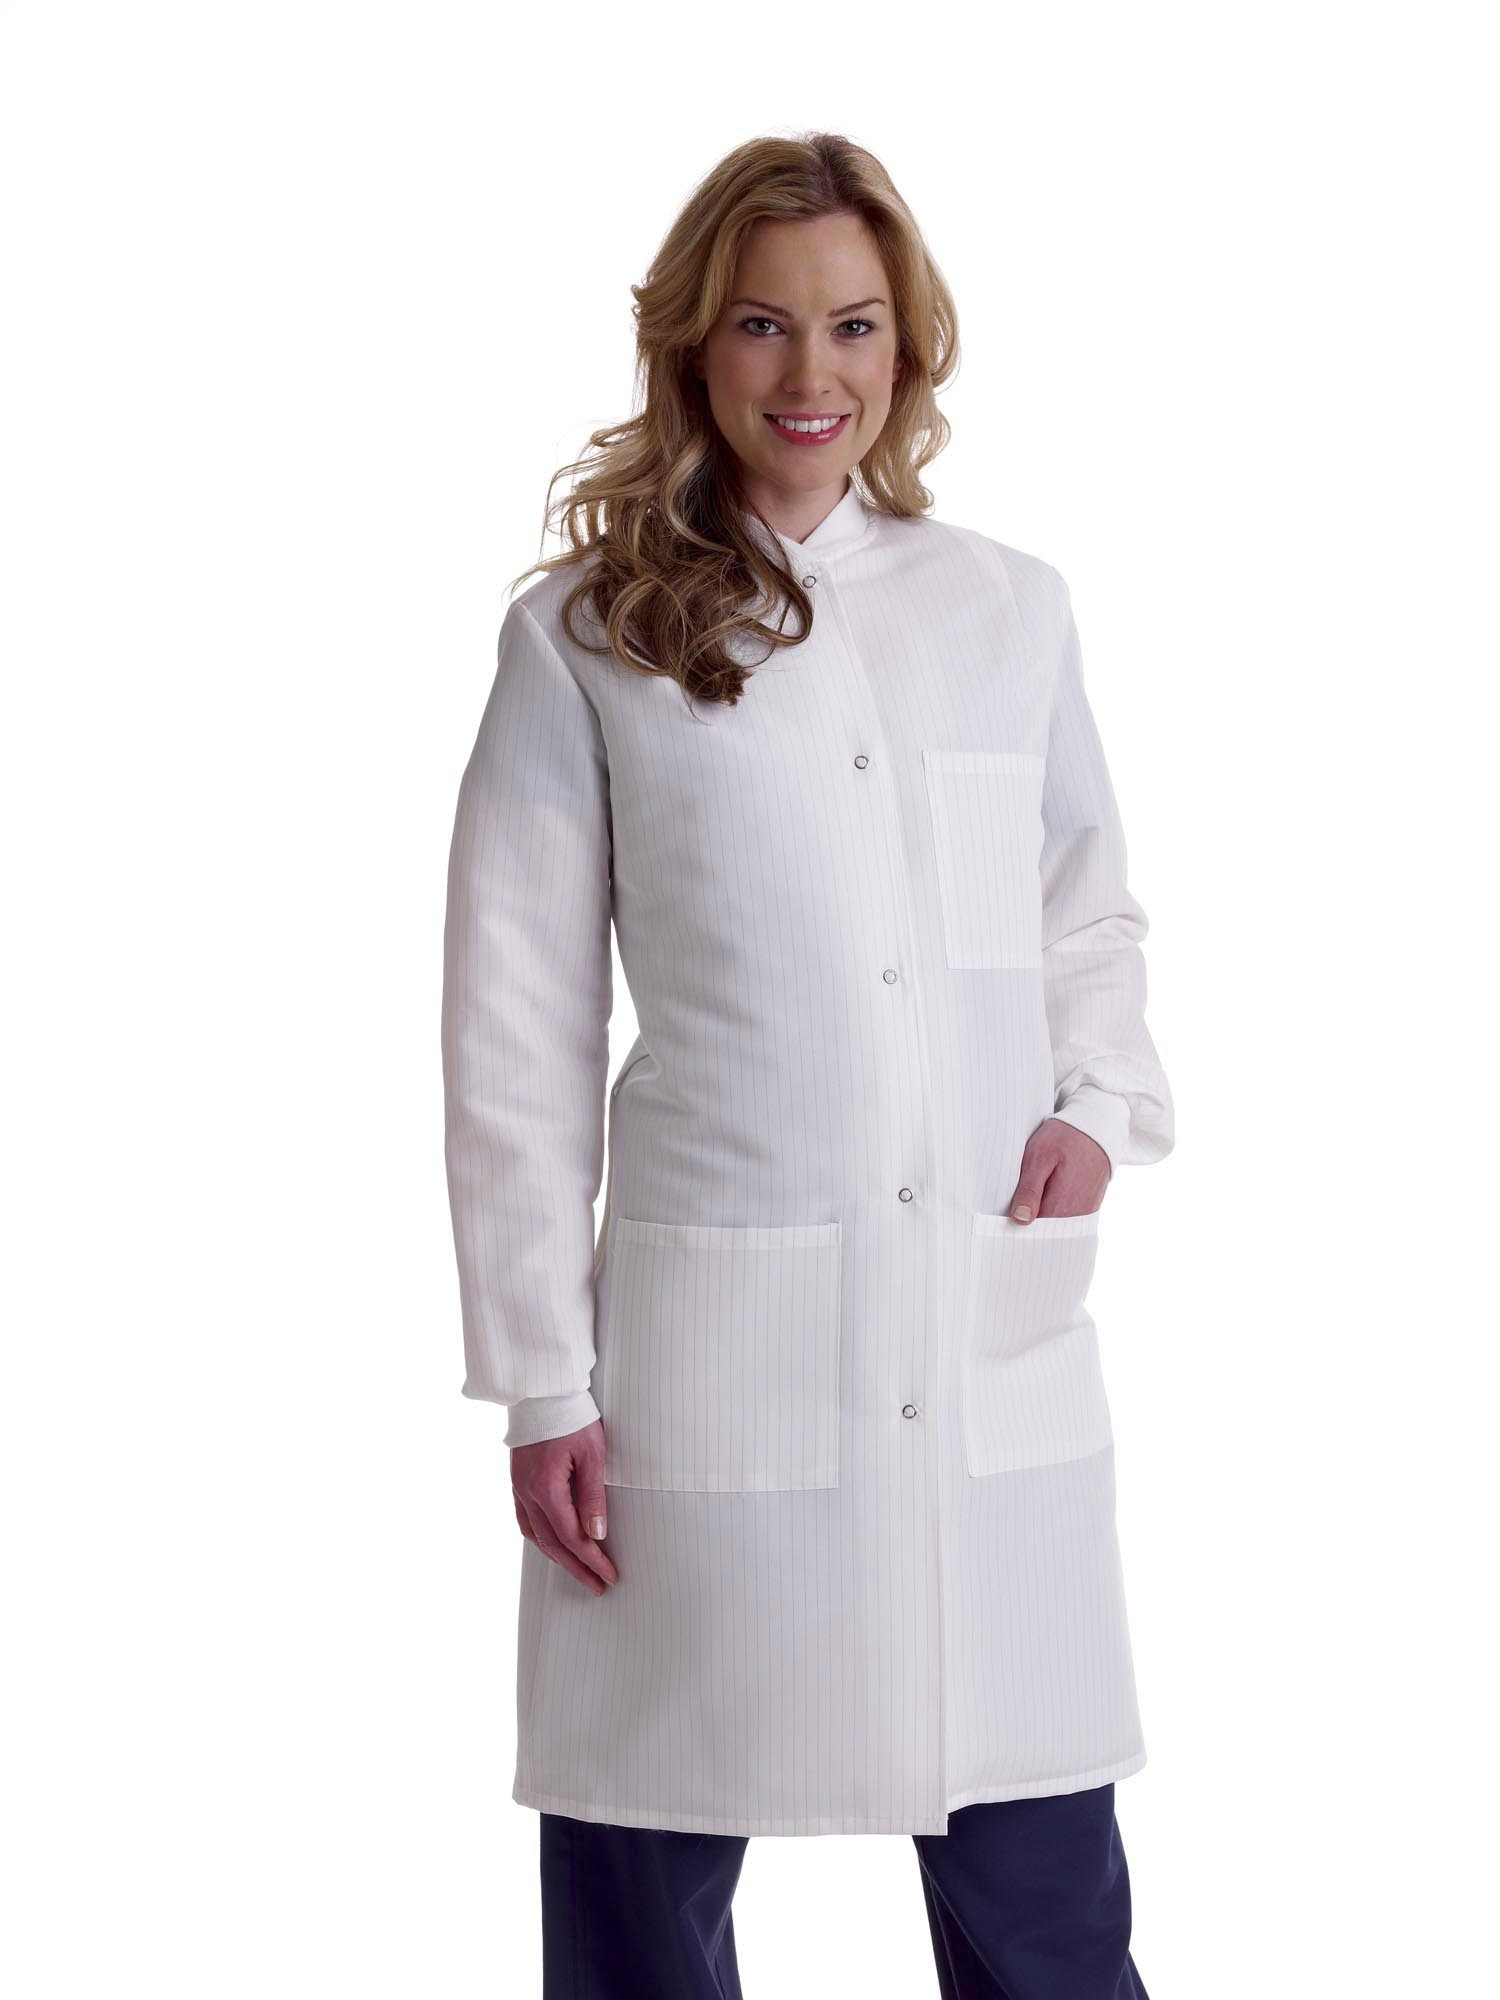 Resistat Lab Coats-Medline